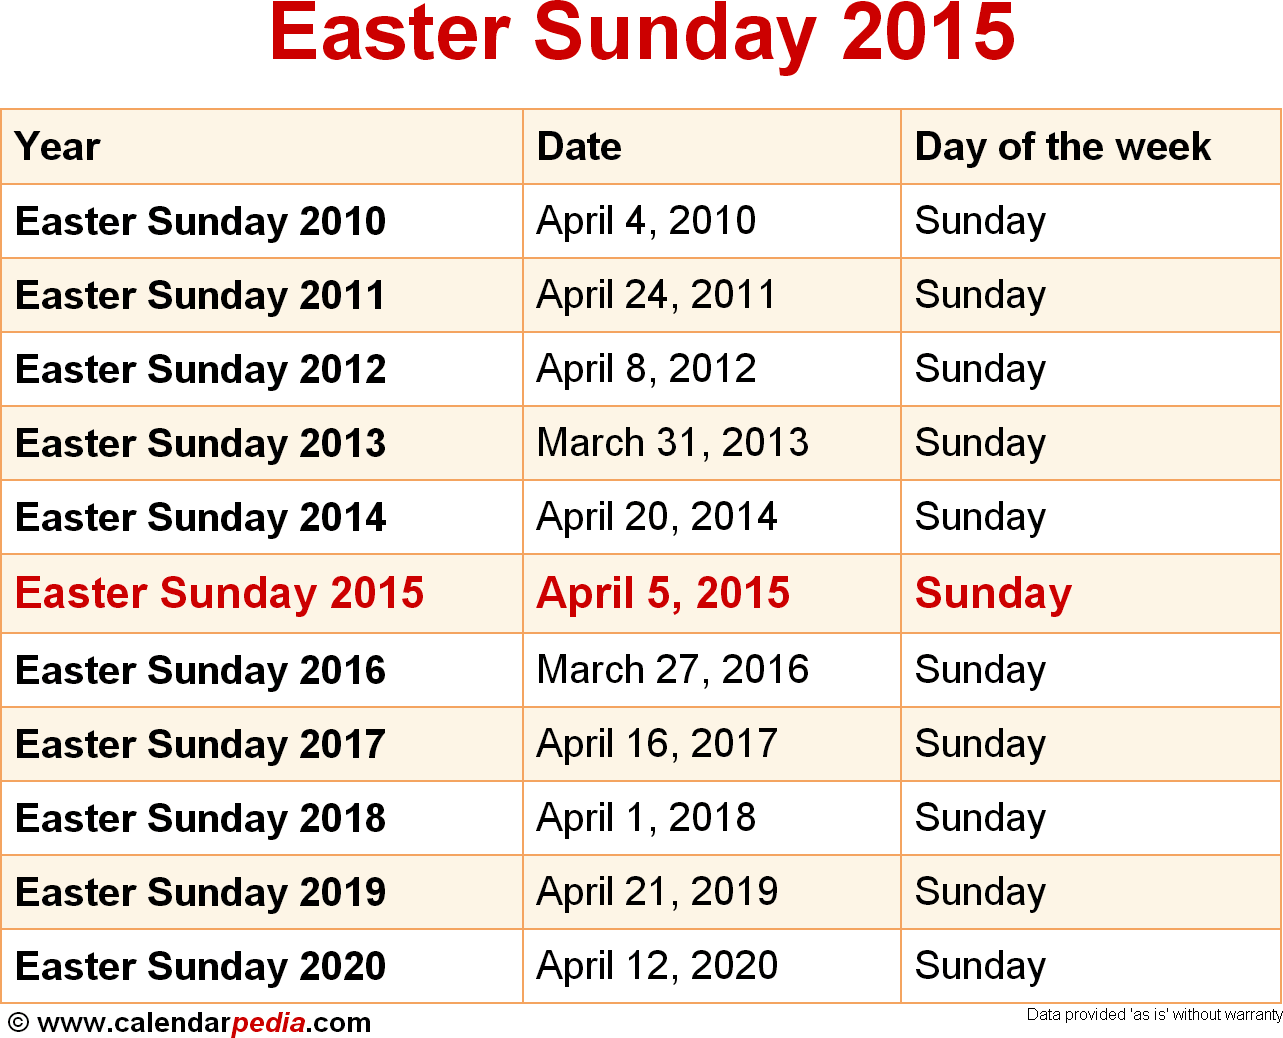 ... 45kB, When is Easter Sunday 2016 & 2017? Date of Easter Sunday 2016